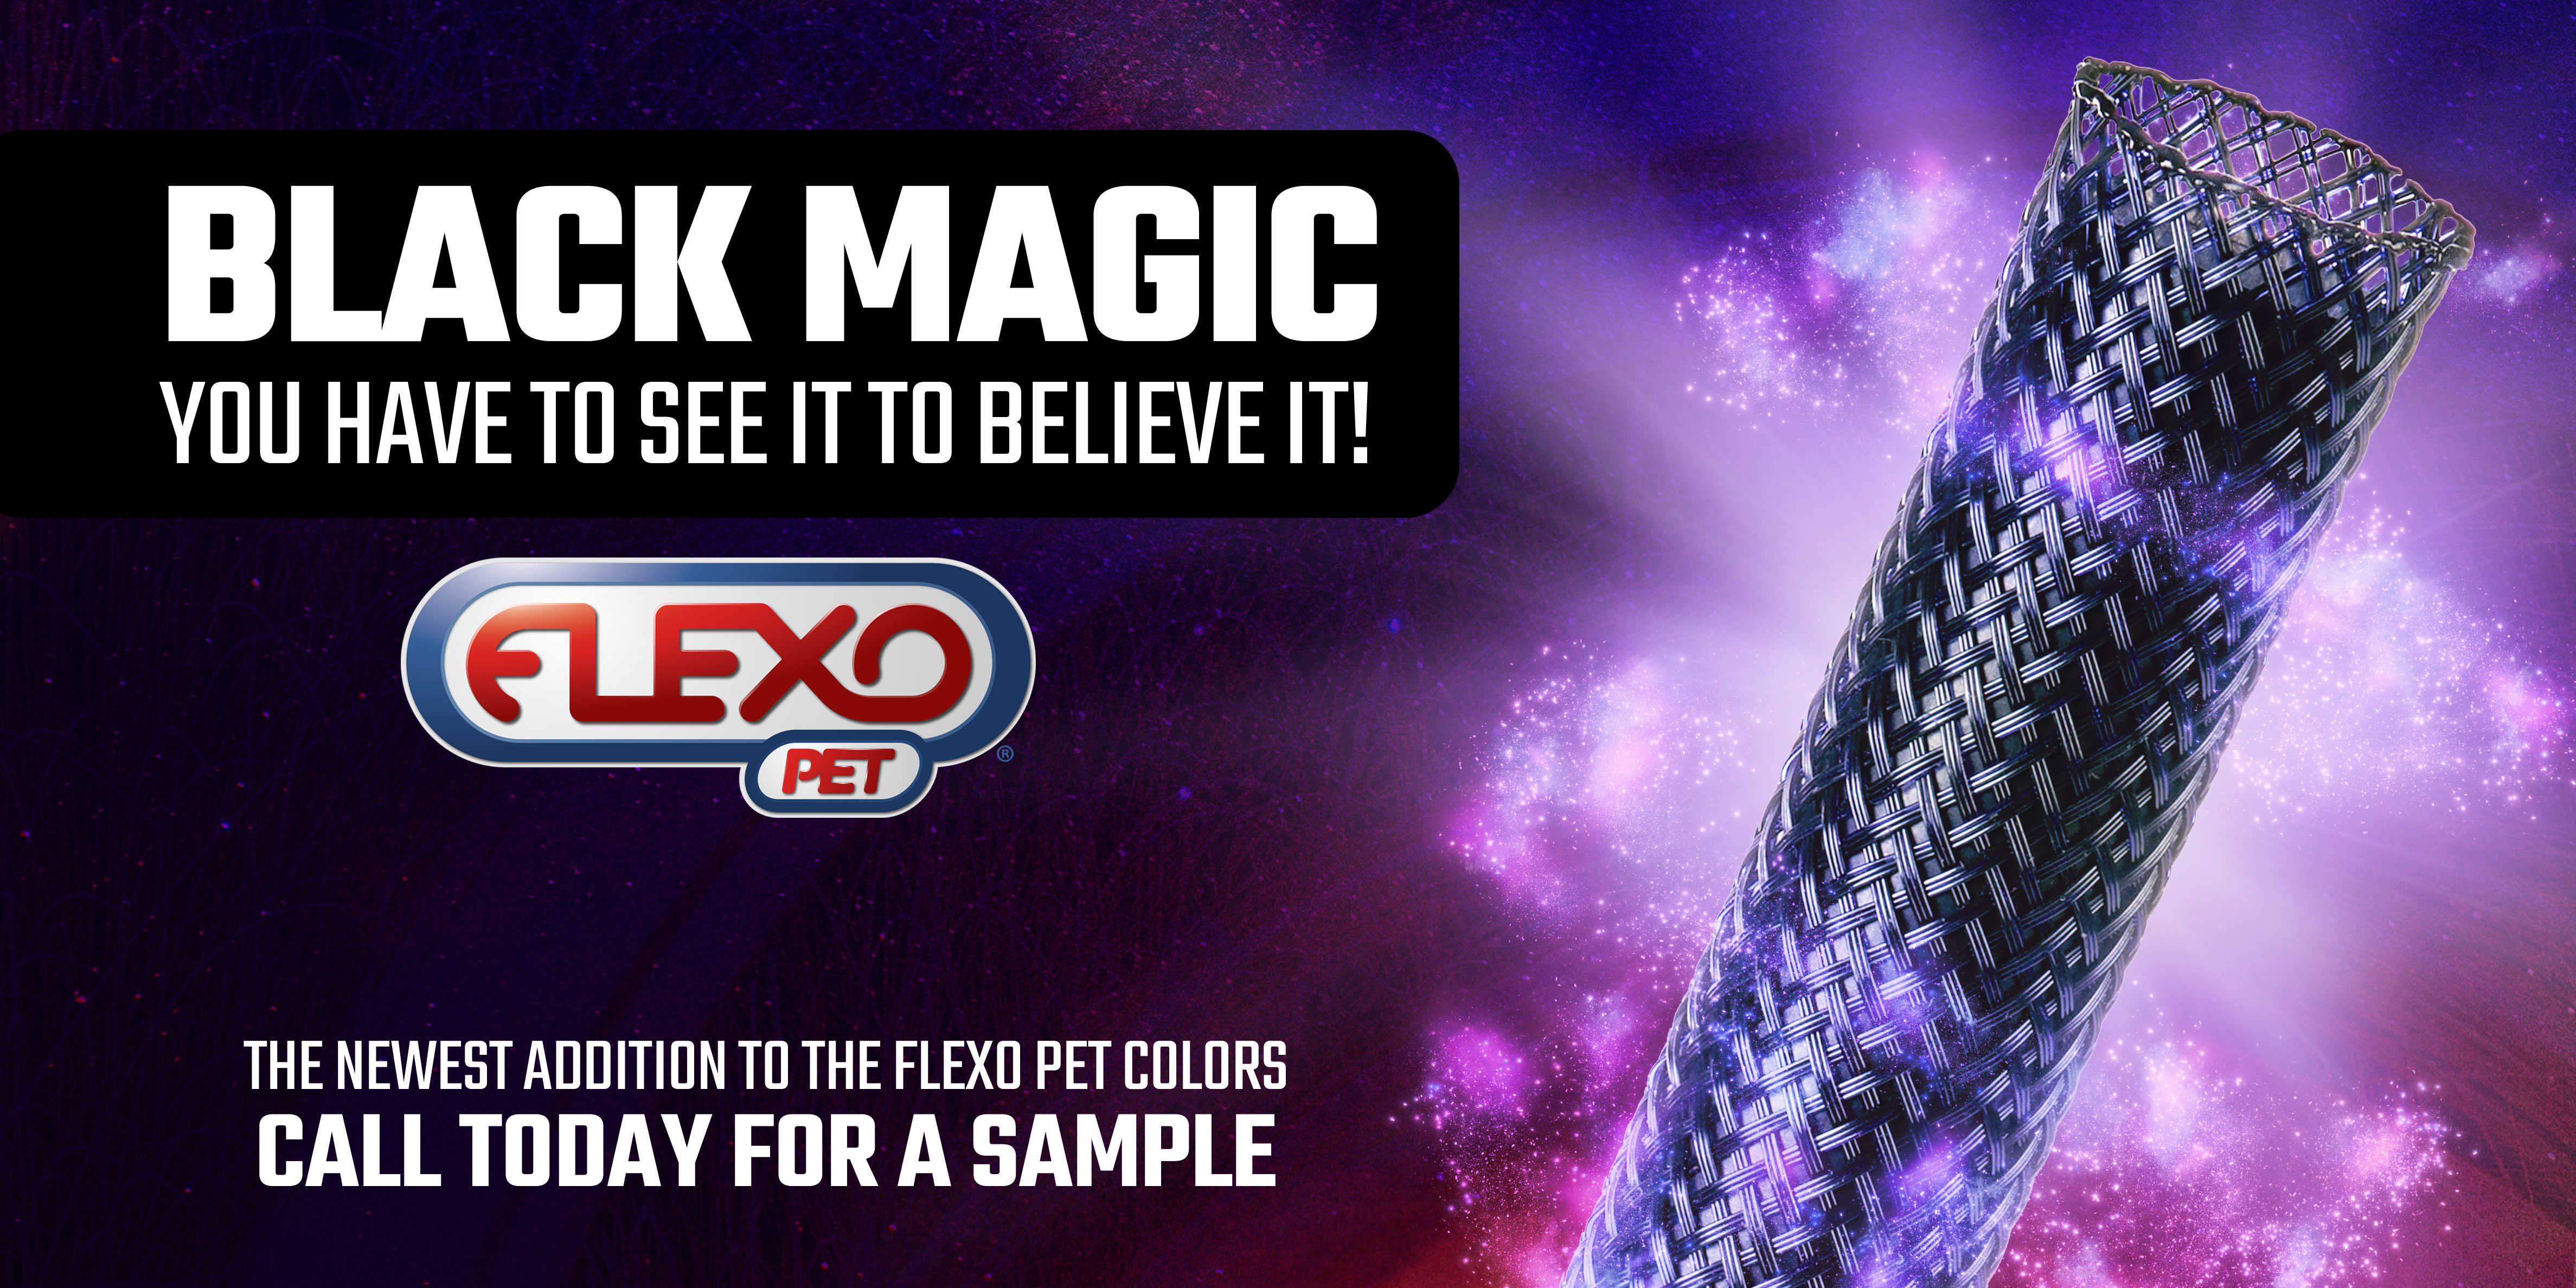 New Flexo Pet - Black Magic